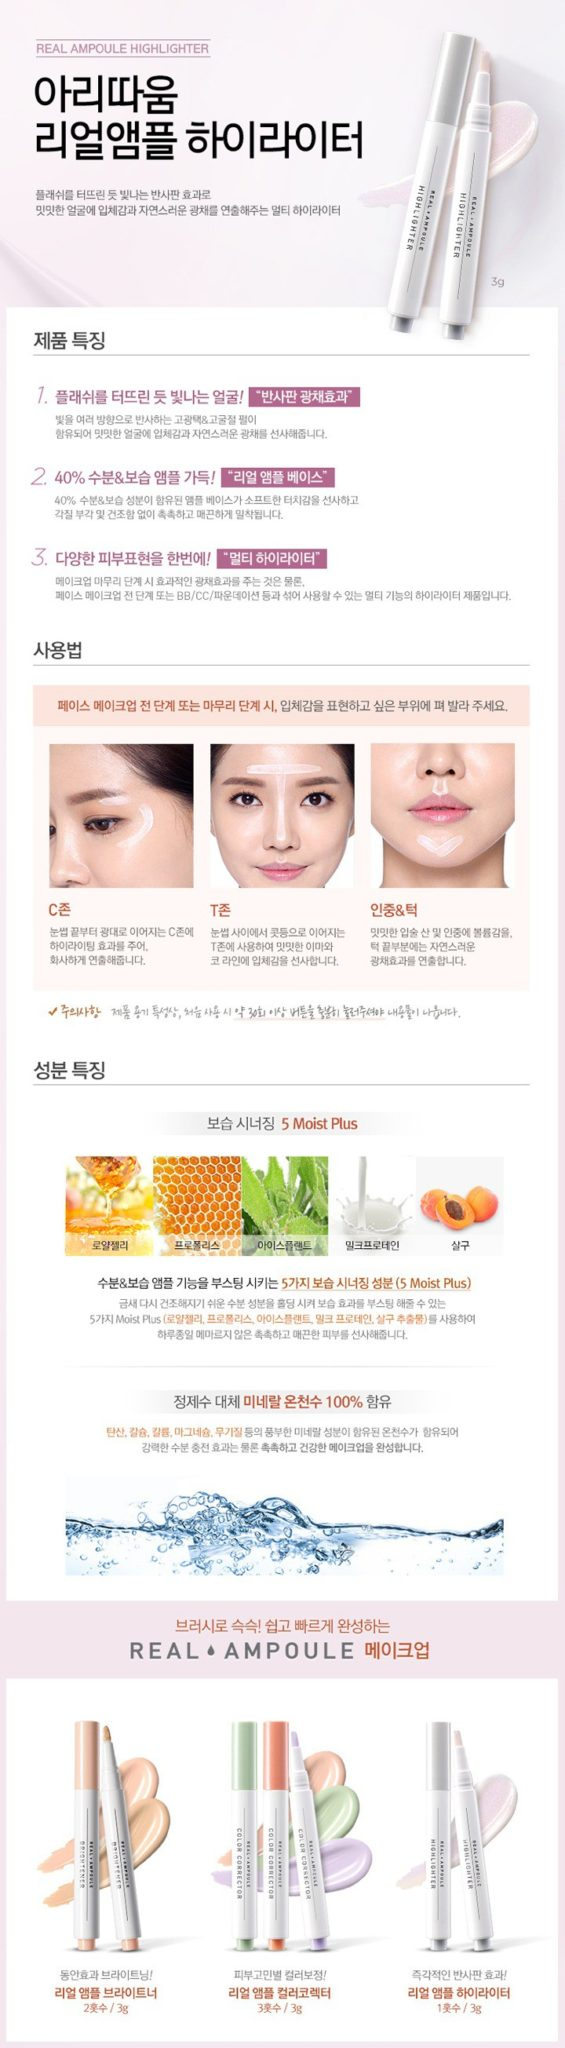 Aritaum Real Ampoule Highlighter 3g  korean cosmetic makeup product online shop malaysia  brunei philippines1